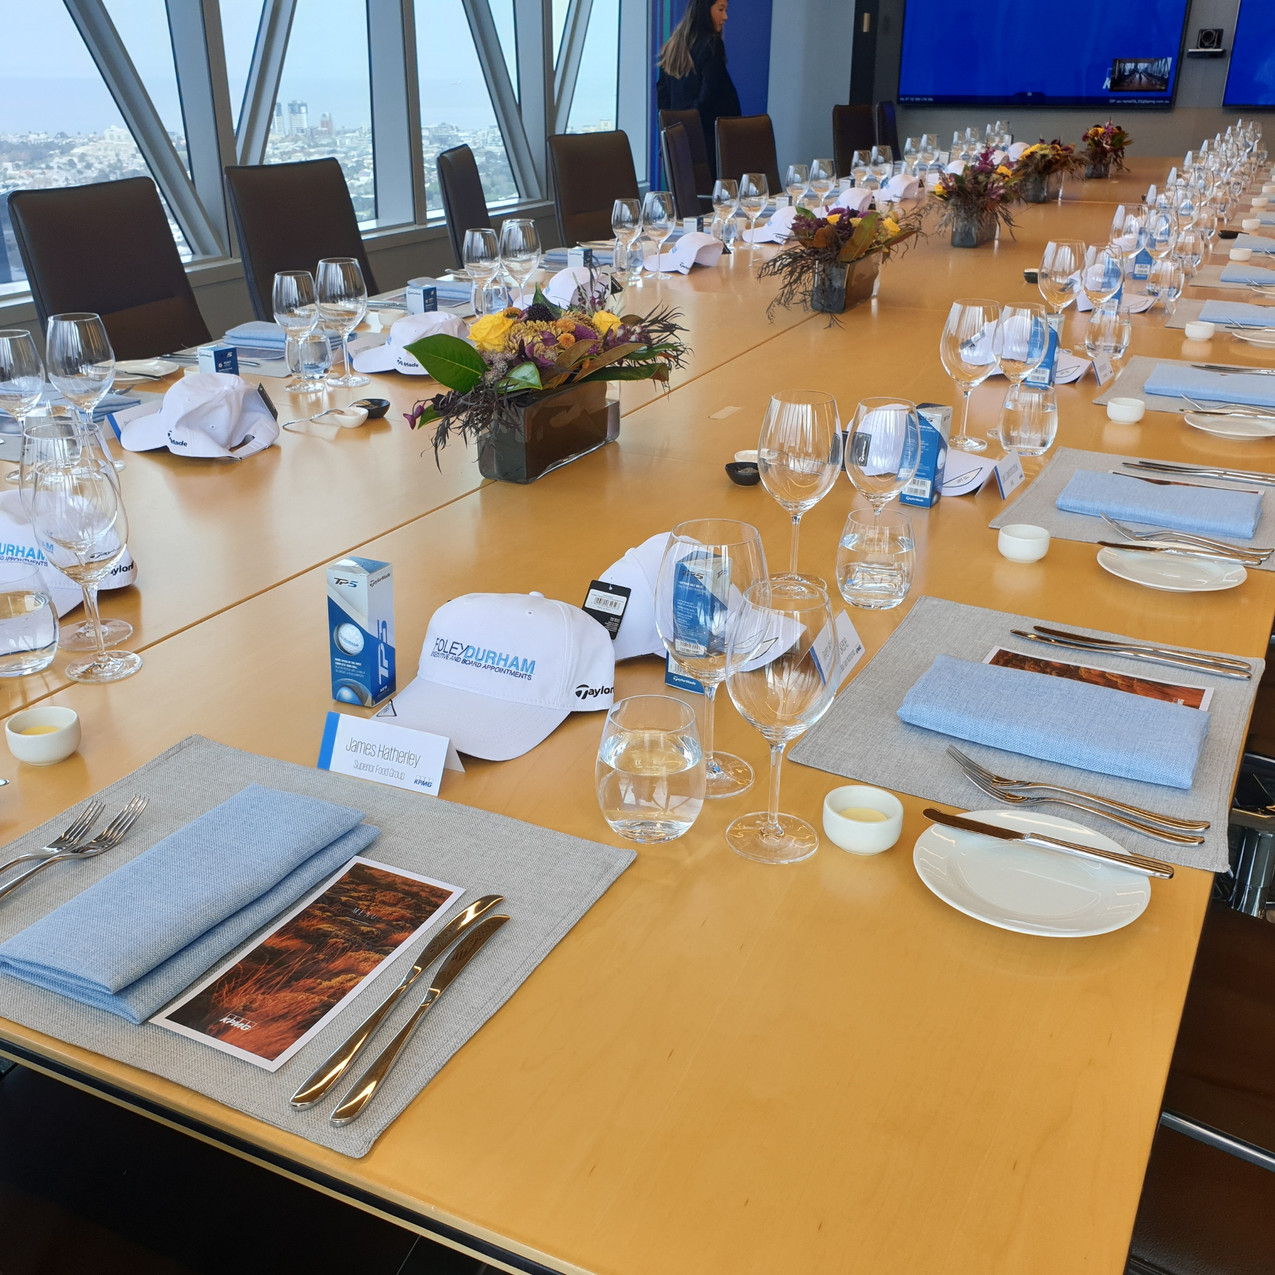 190913 KPMG Lunch - set up